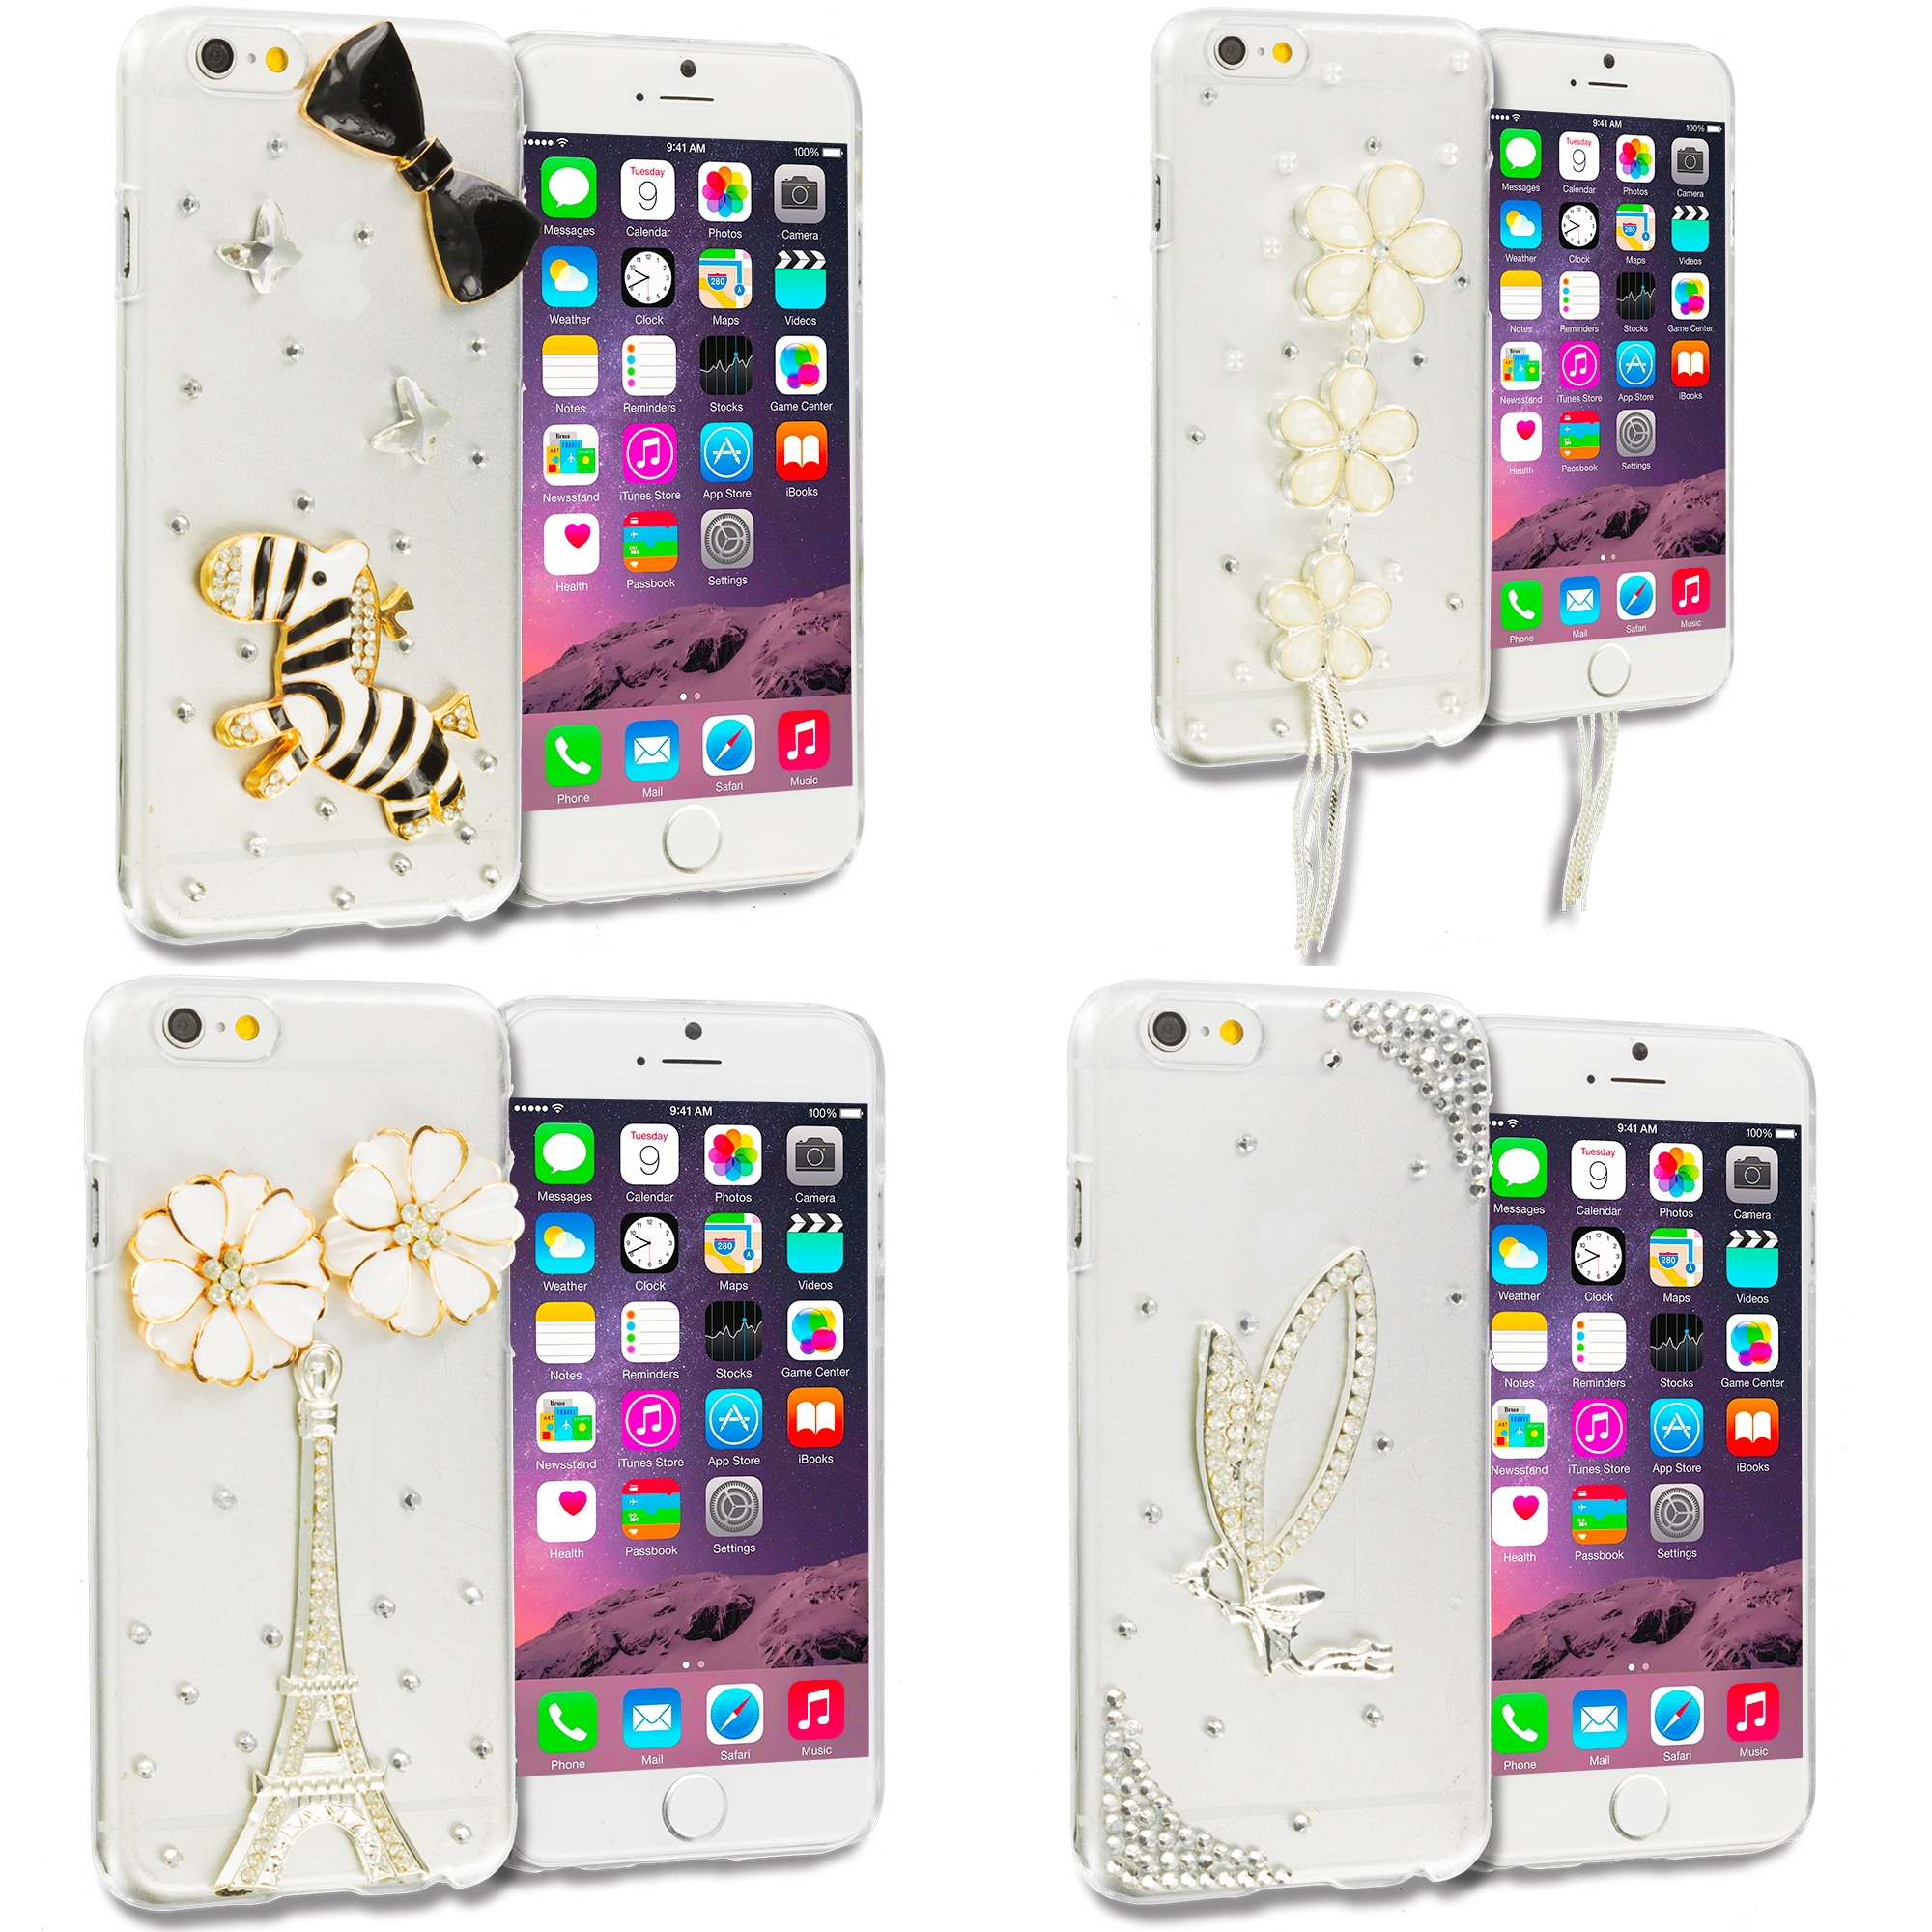 Apple iPhone 6 Plus 6S Plus (5.5) 4 in 1 Combo Bundle Pack - Bling Rhinestone Case Cover